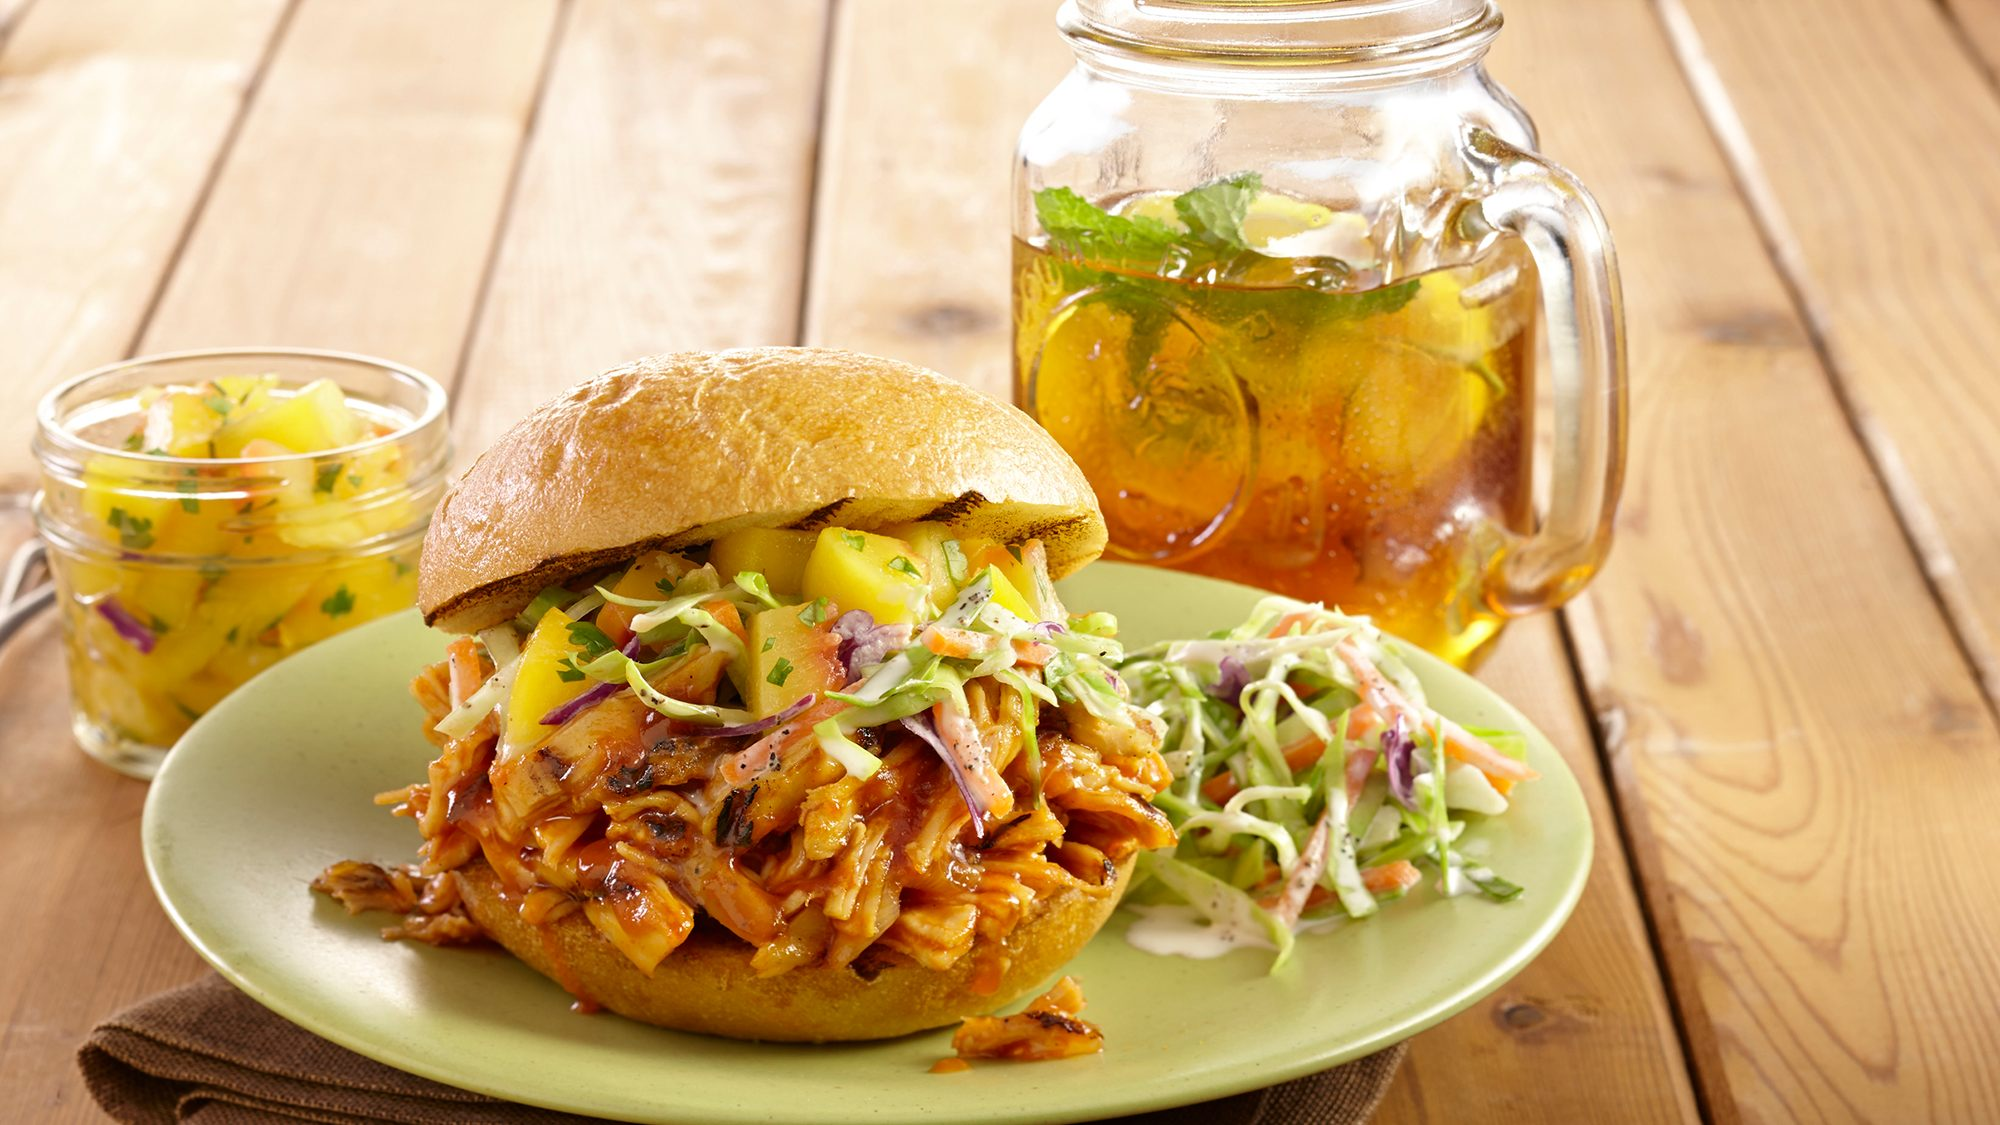 McCormick Pulled Chicken Sandwich with Peach Salsa